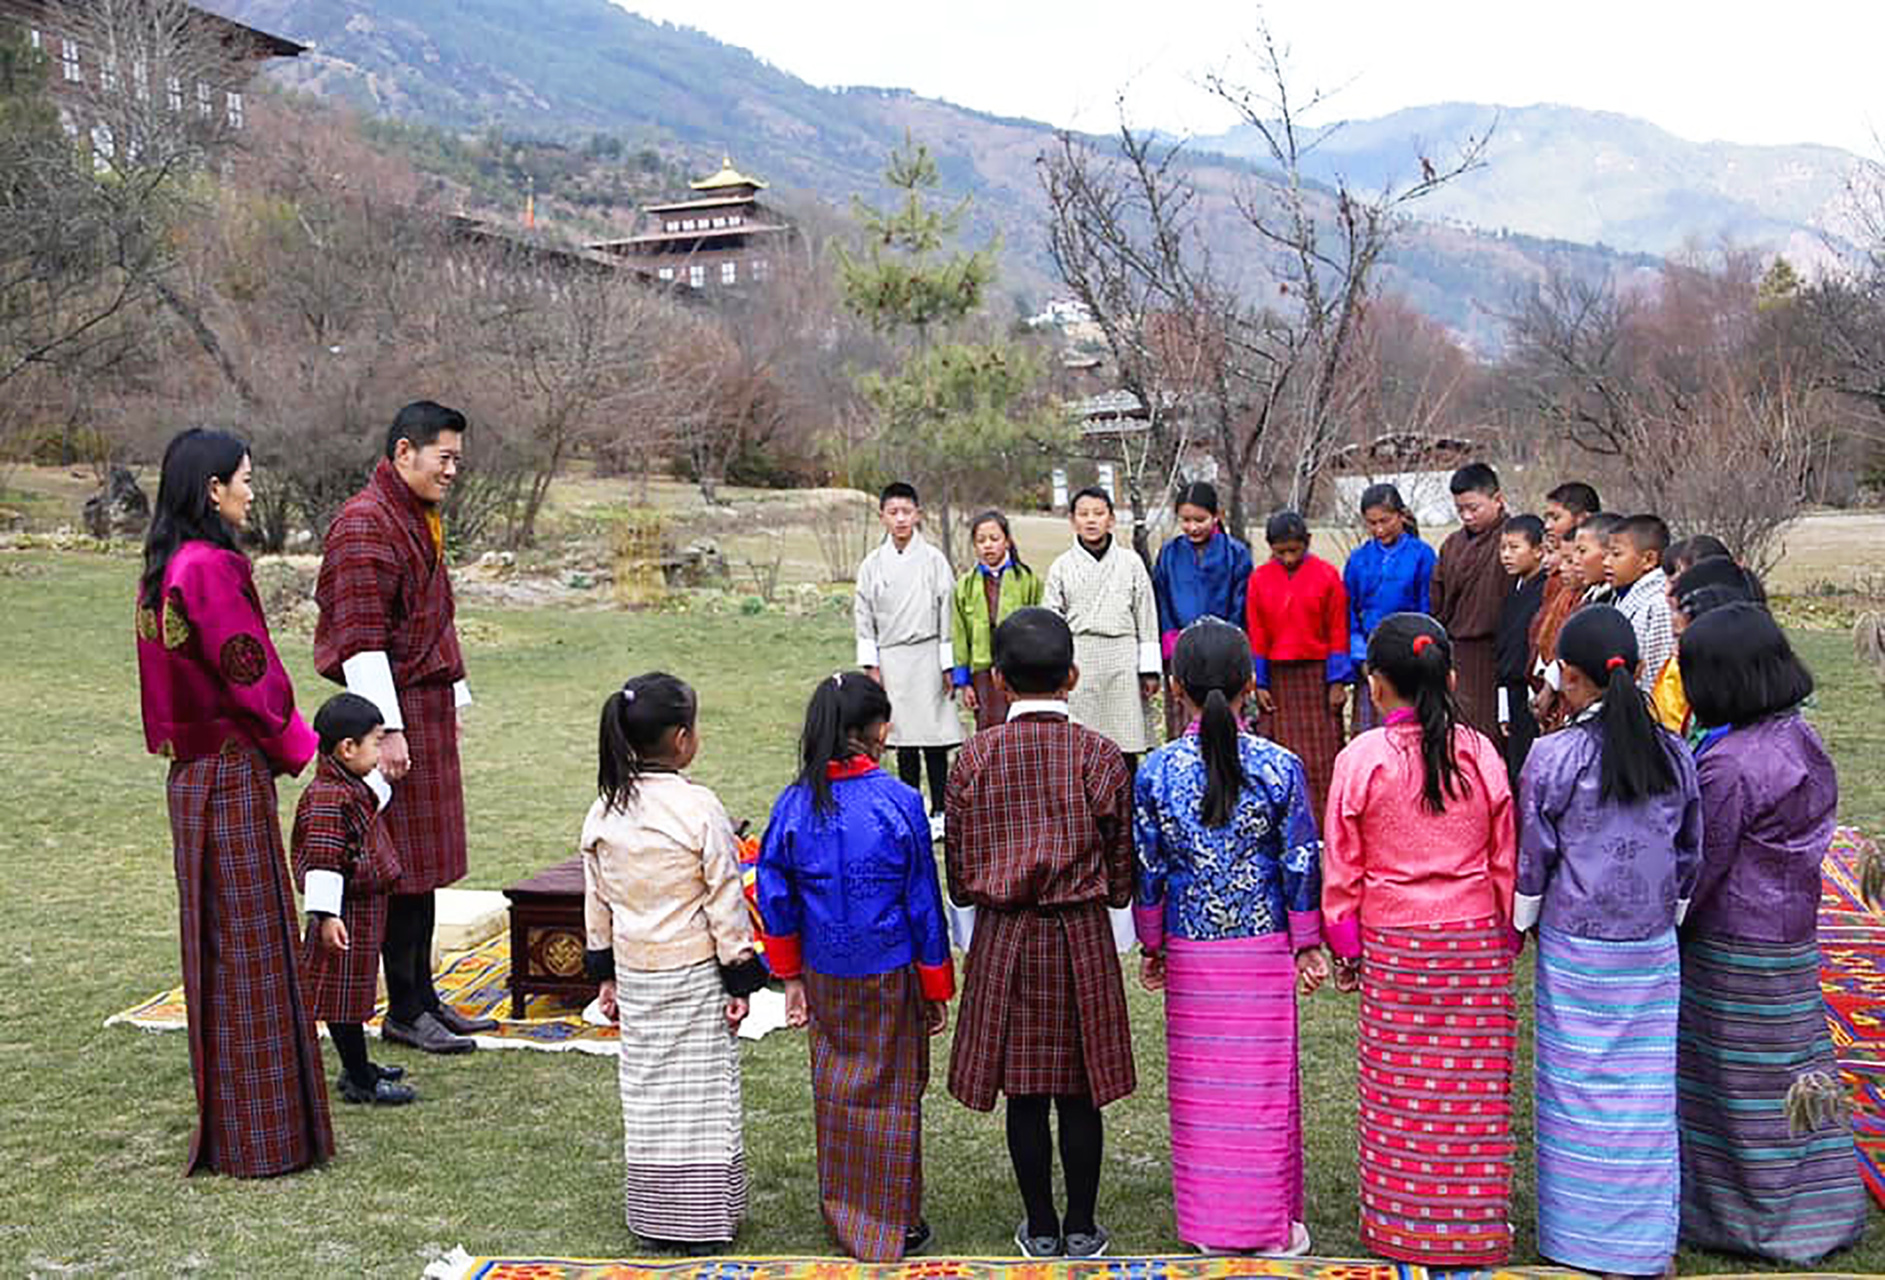 The Wangchuck Dynasty of Bhutan